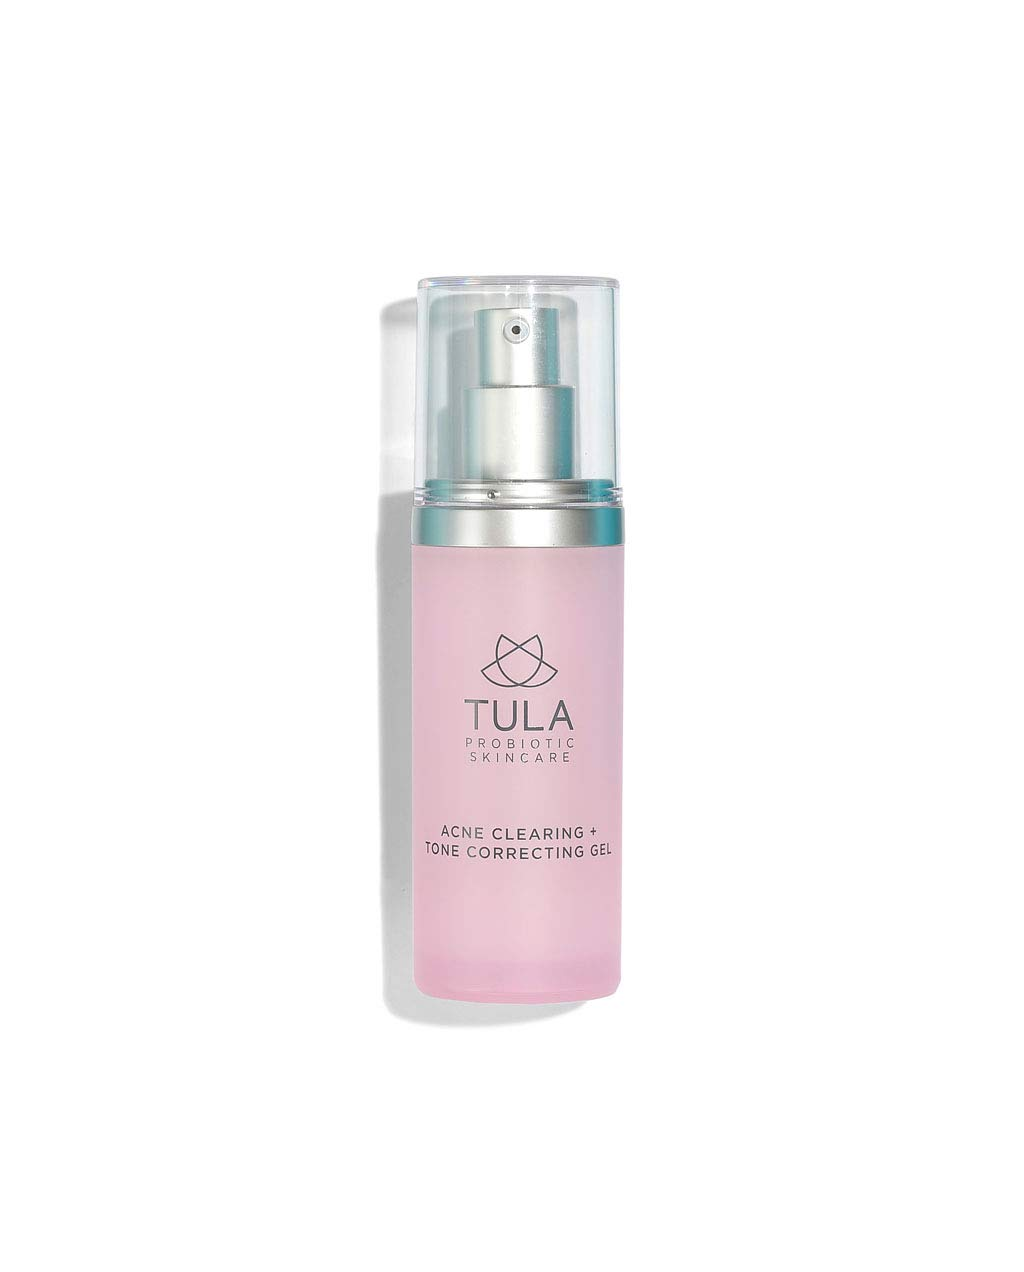 TULA Probiotic Skin Care Acne Clearing + Tone Correcting Gel | Acne Treatment, Clear Up Acne, Prevent Breakouts & Brighten Marks, Contains Salicylic Acid and Probiotics | 1 fl. oz.